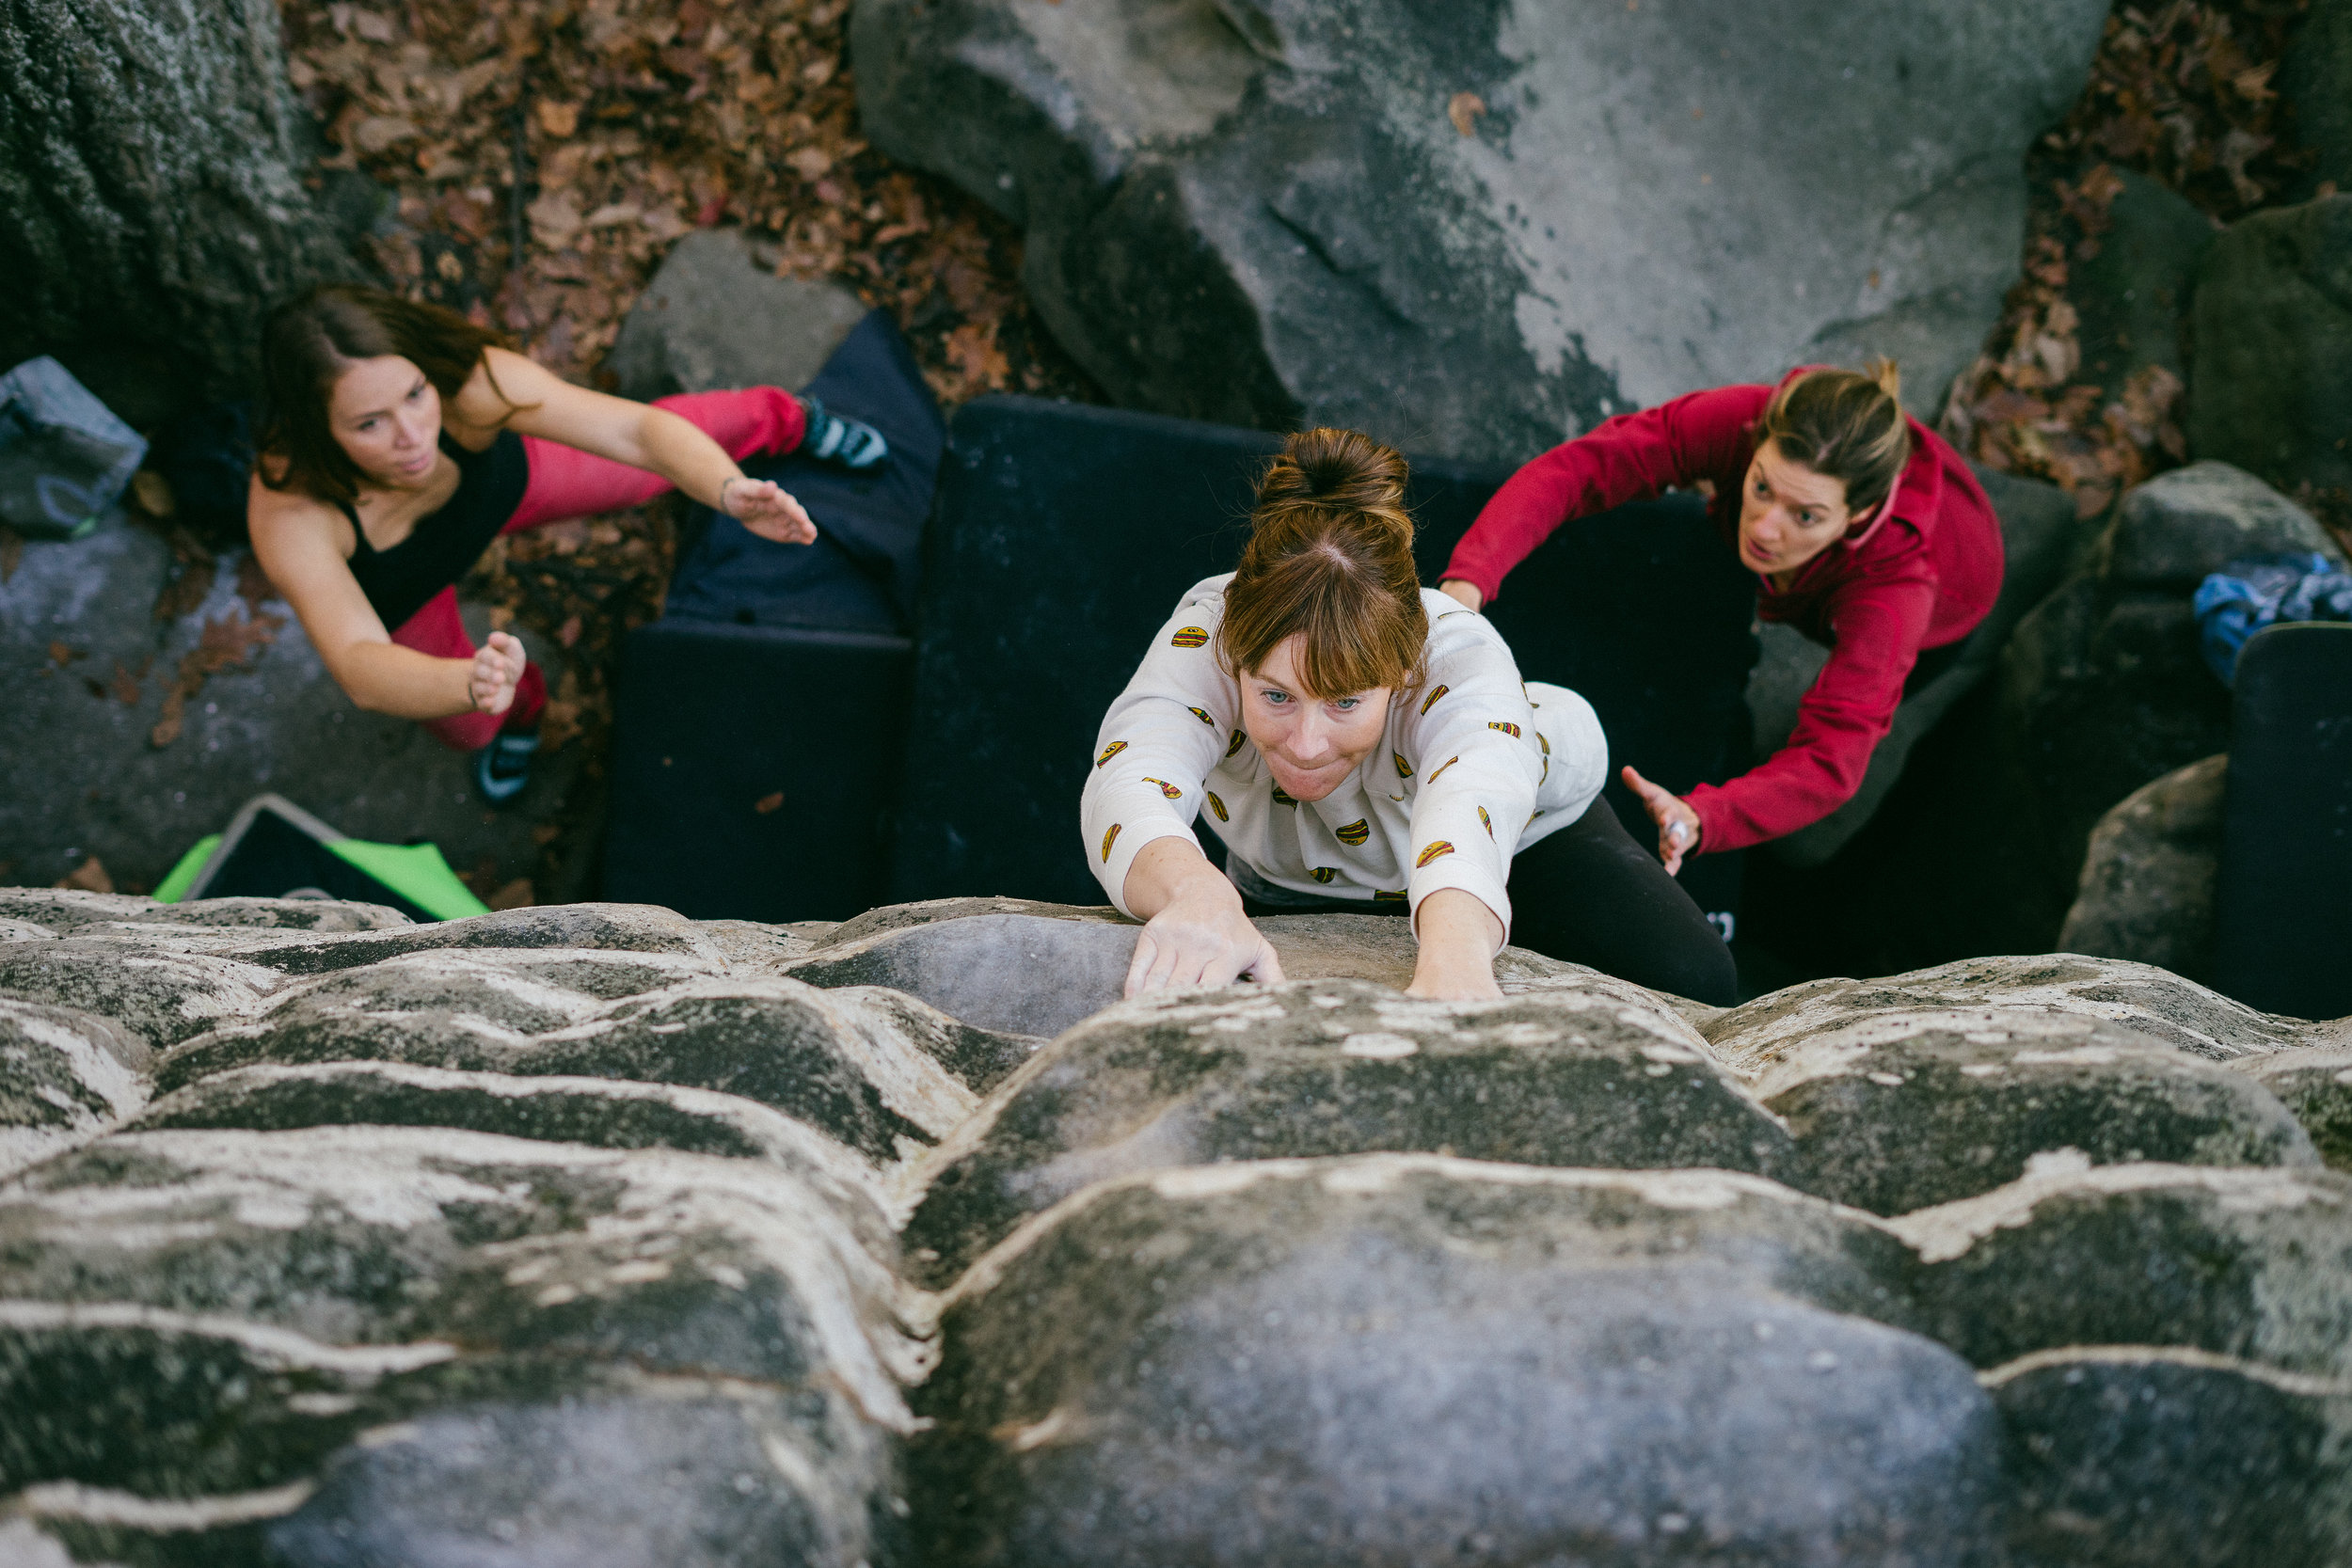 Bouldering at Stonefort near Chattanooga, TN